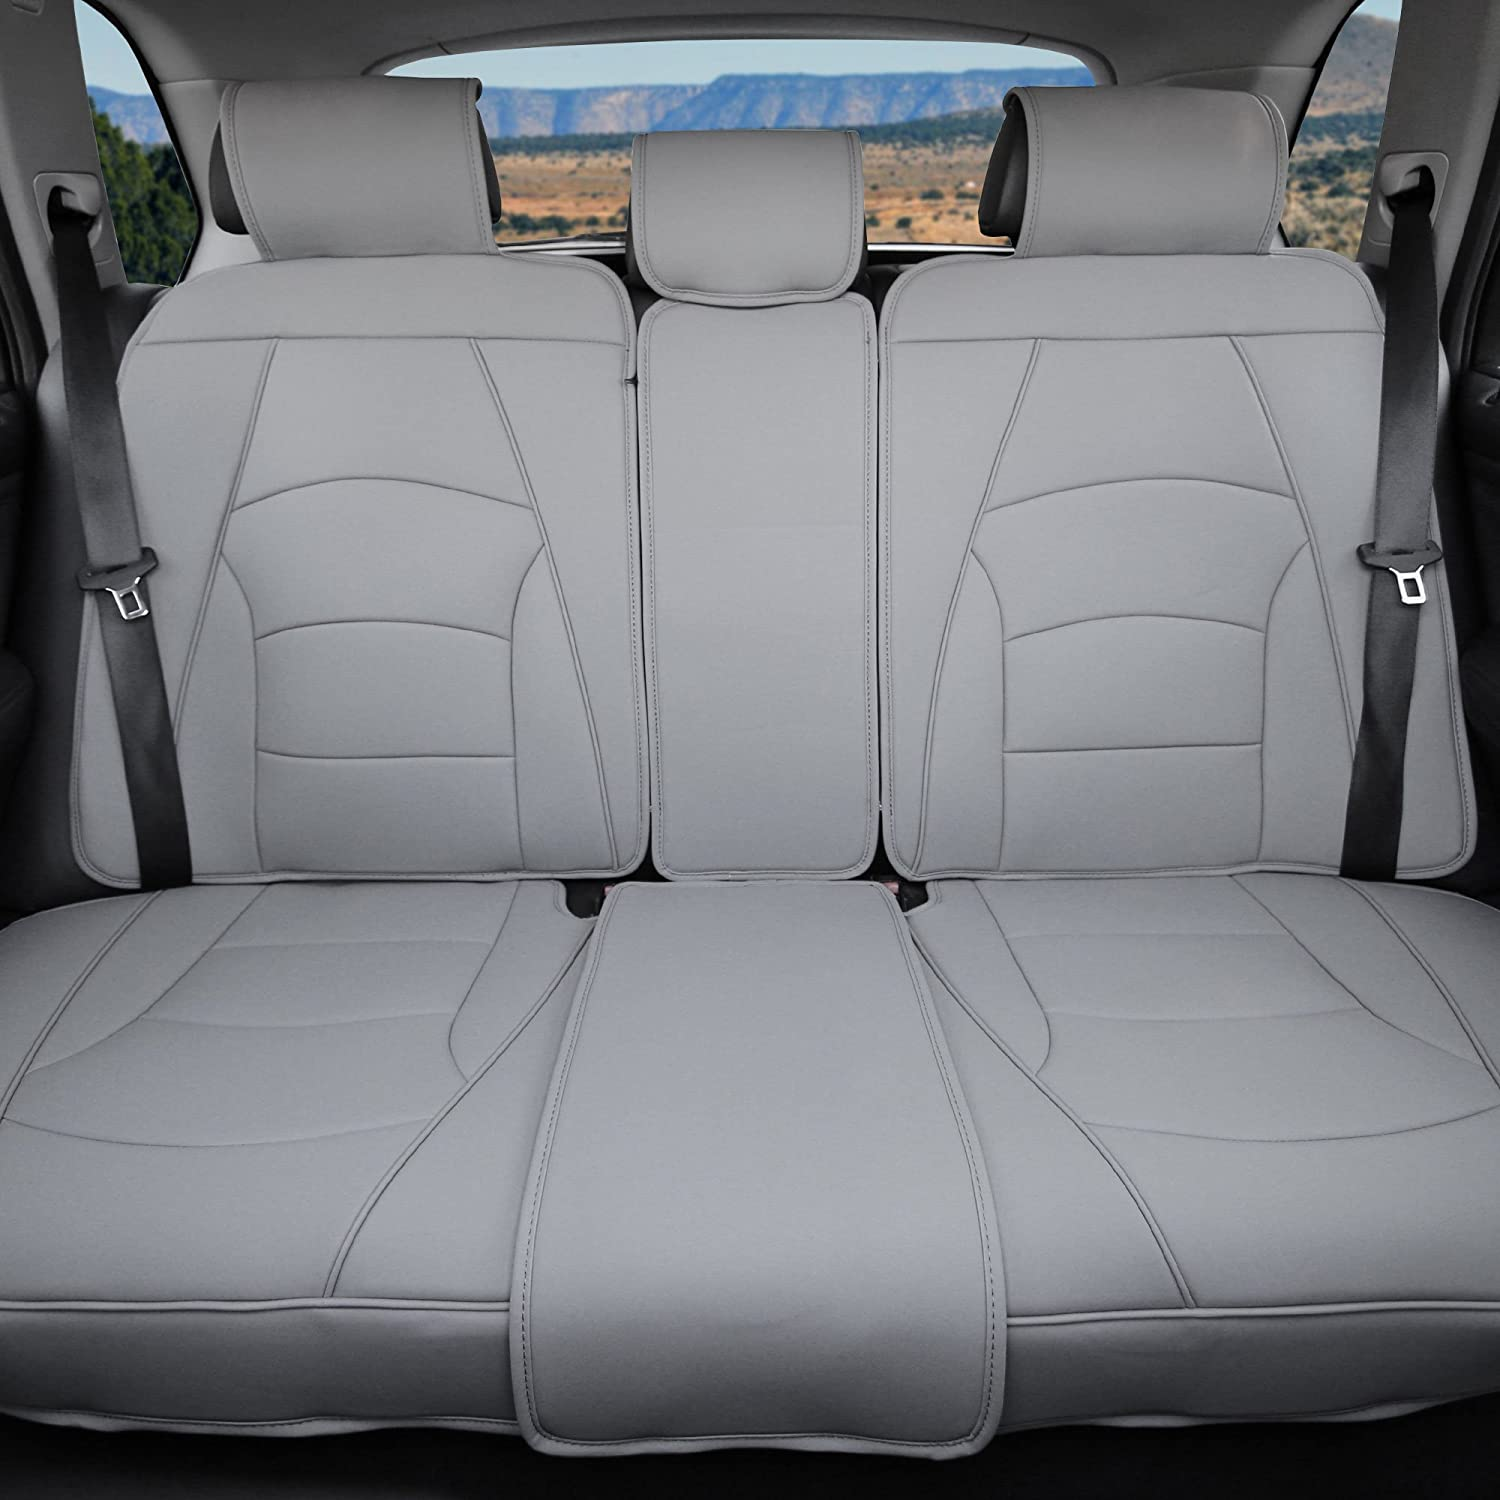 FH Group PU205013 Ultra Comfort Leatherette Seat Cushions (Split Bench) Solid Gray Color- Fit Most Car, Truck, SUV, or Van